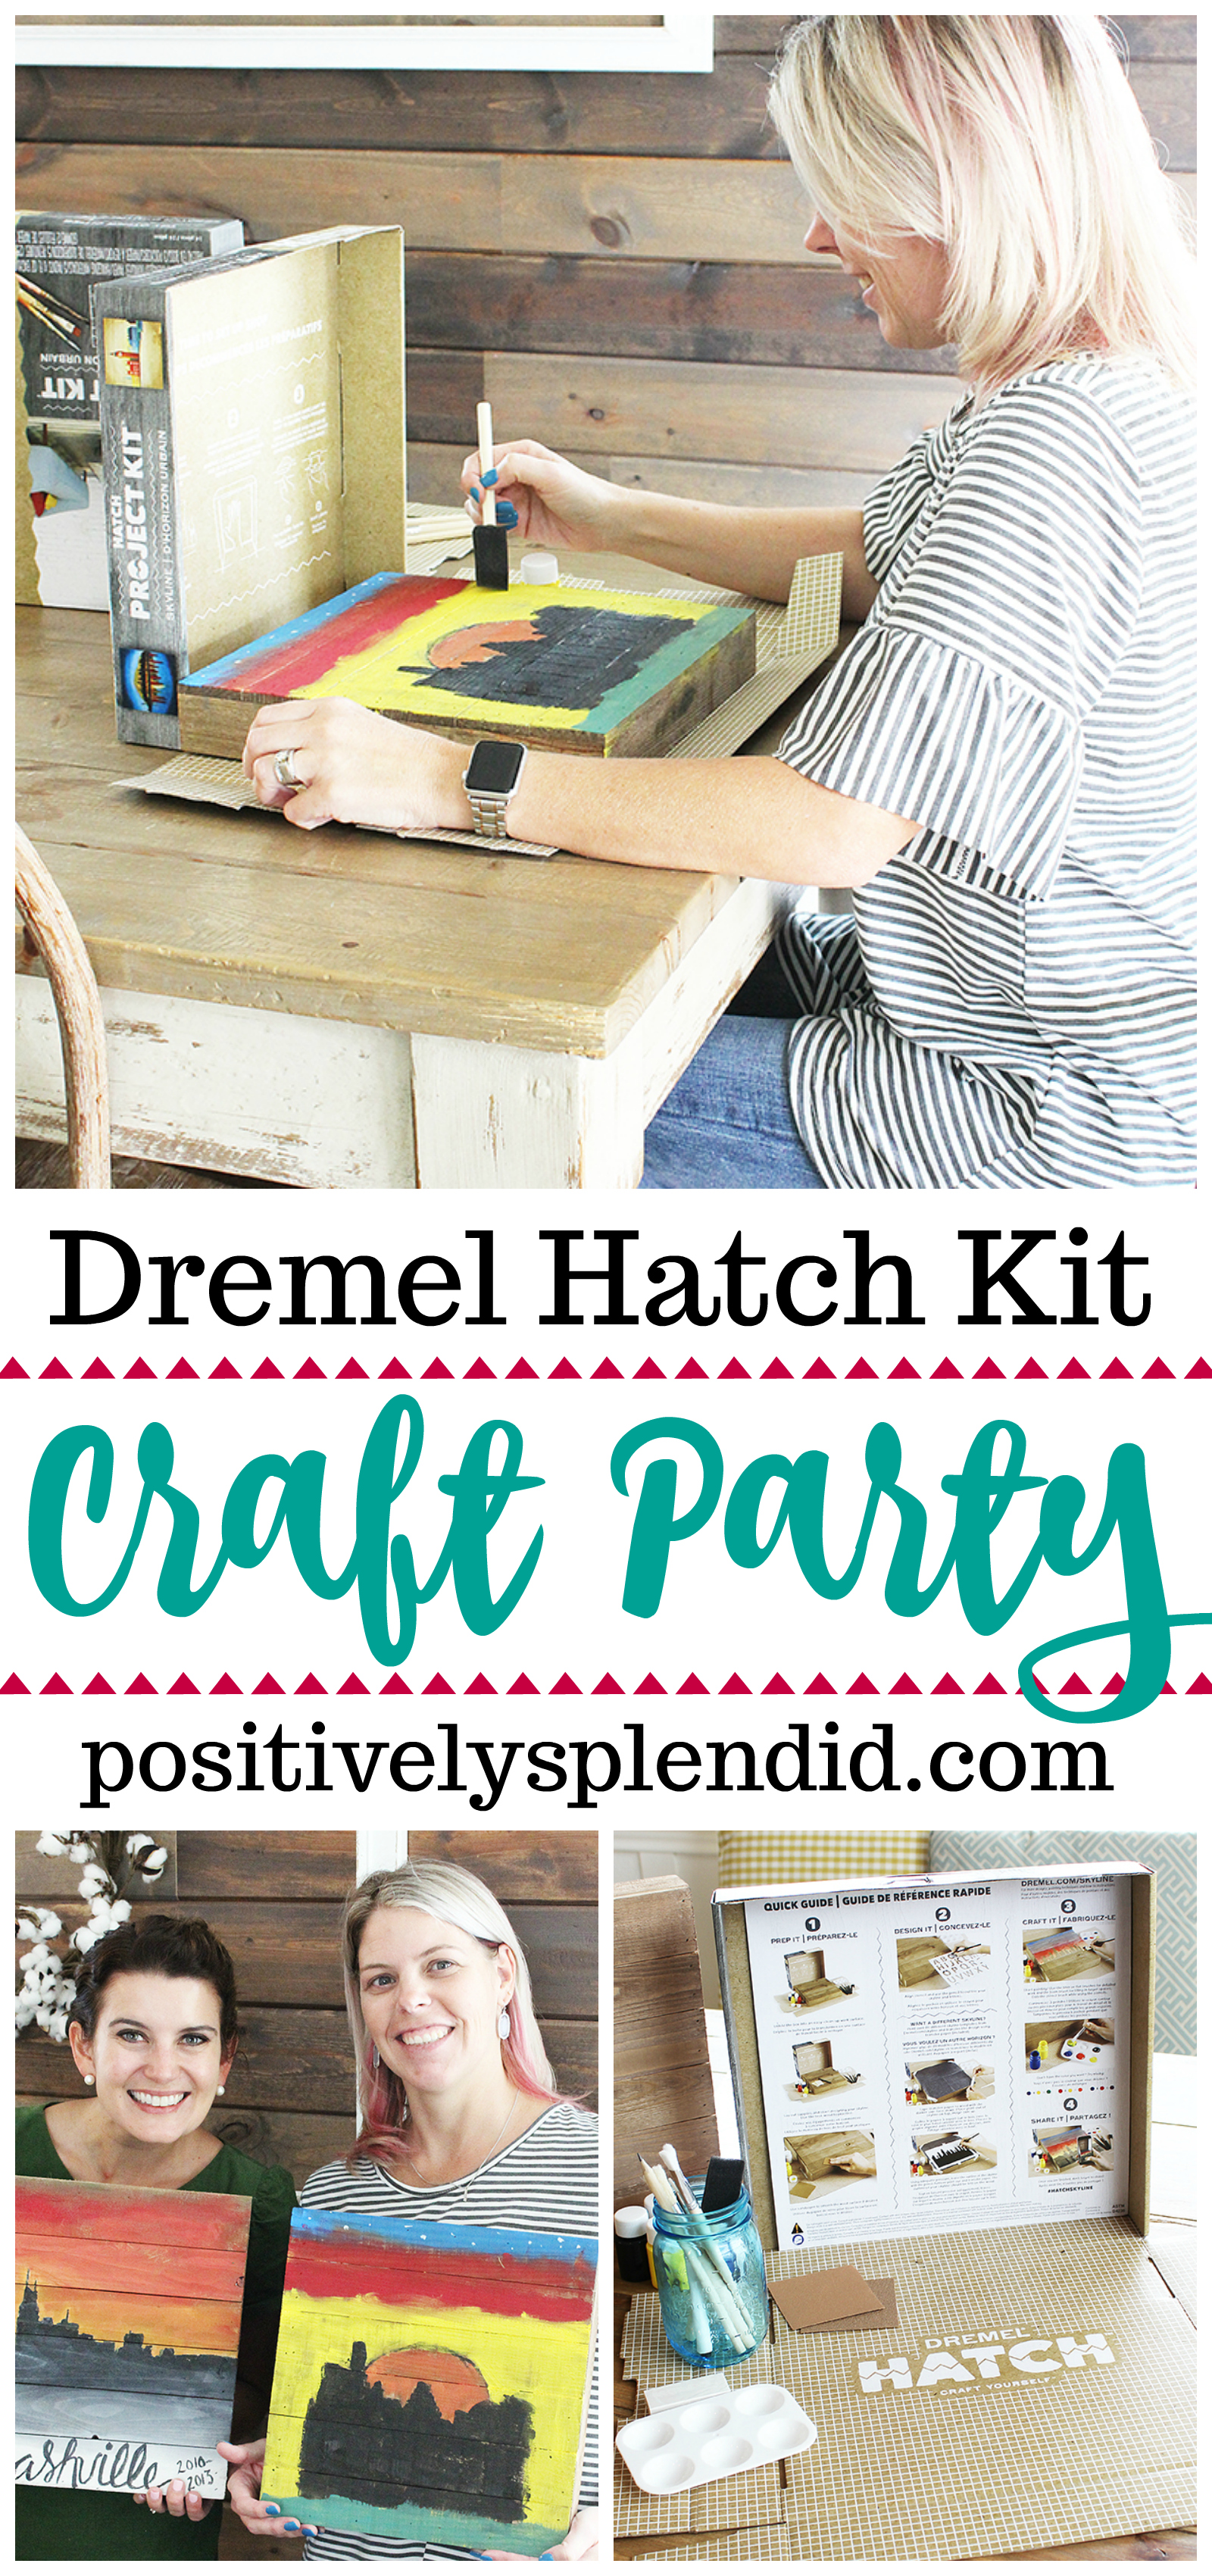 Host a Craft Party at Home with Dremel Hatch Kits